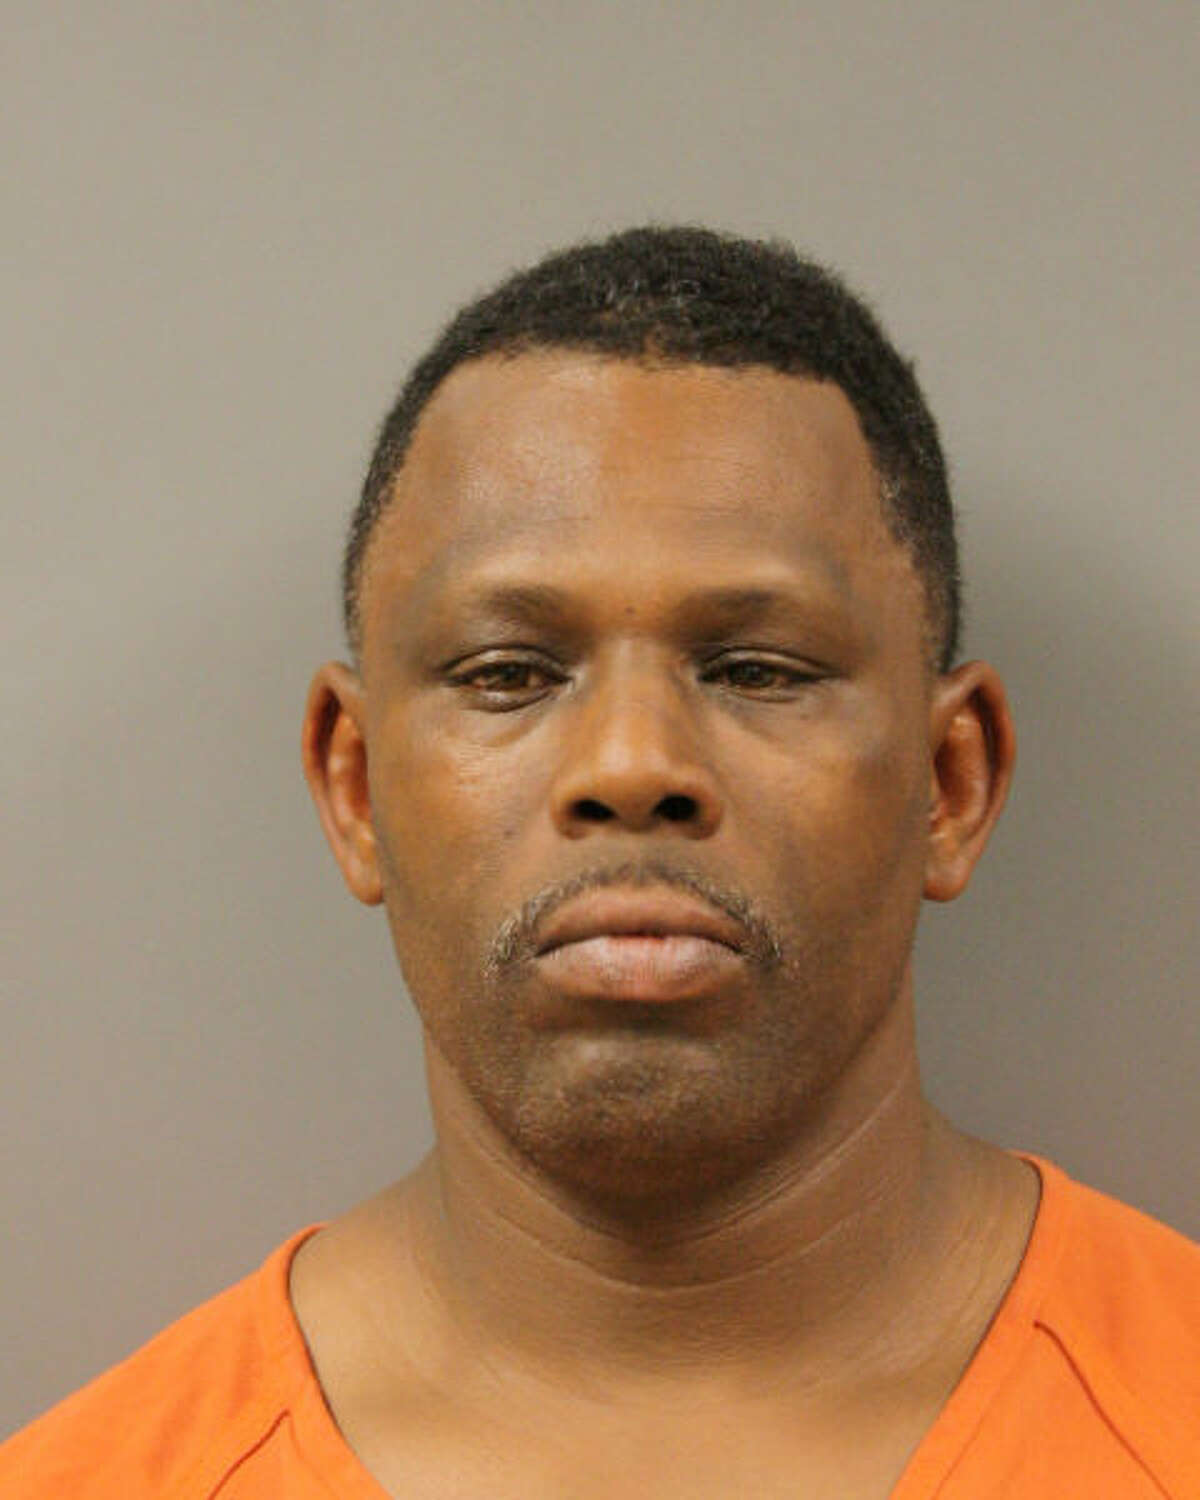 Isiah Carden, 46, of Spring, an agricultural specialist for U.S. Customs and Border Protection, has been charged with a misdemeanor as part of a nation-wide sweep of prostitutes and their customers. (Harris County Sheriff's Office)